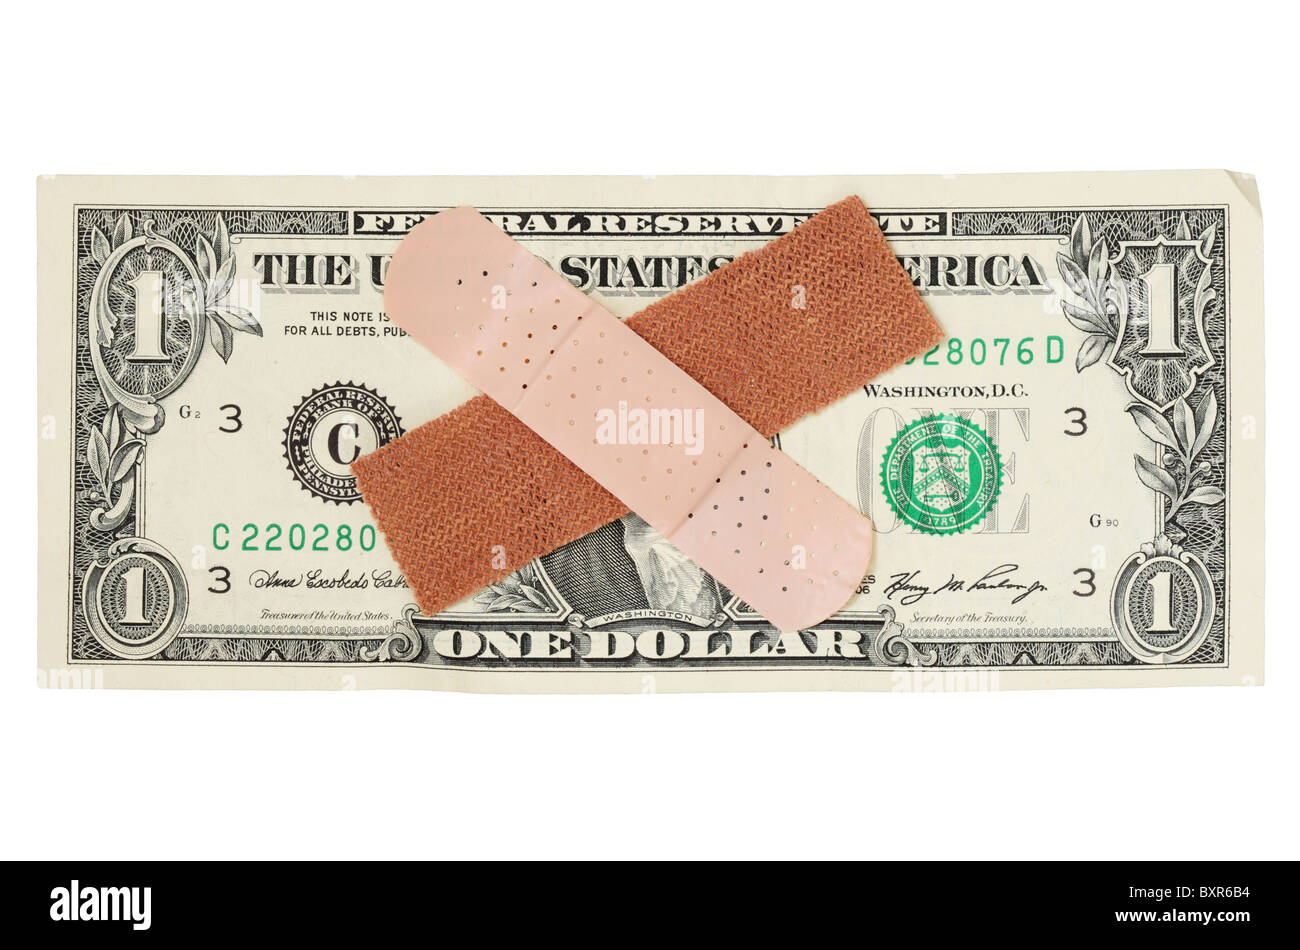 US one dollar bill with bandages on the portrait - Stock Image